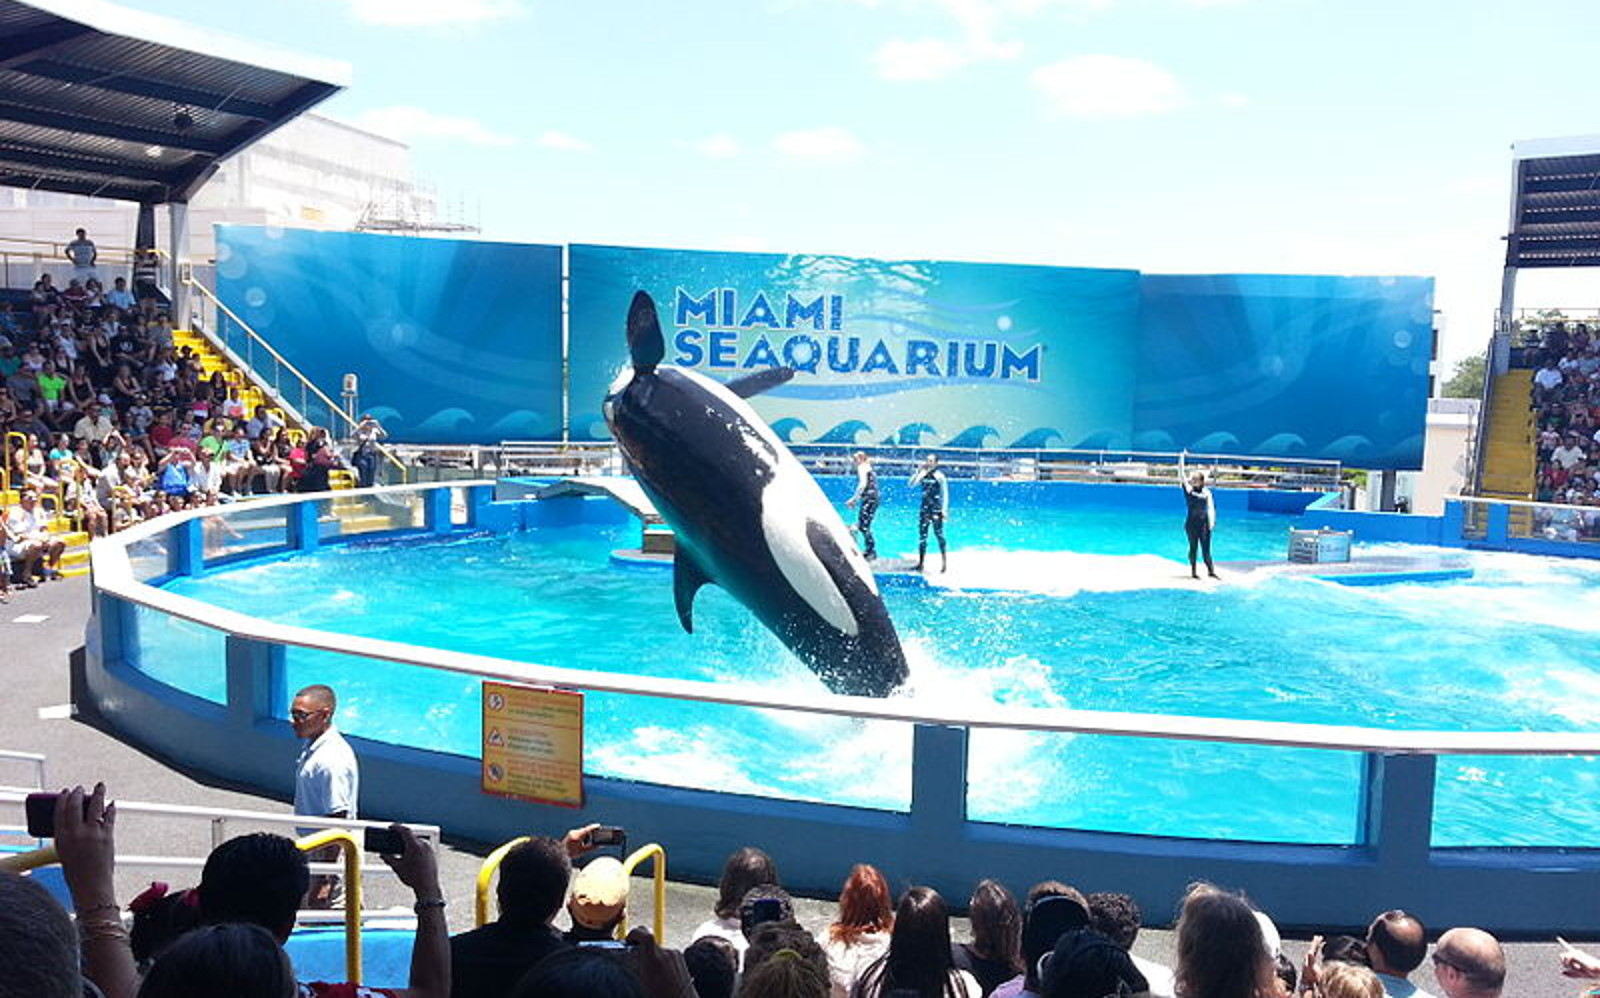 Lolita Might Have to Stay in Miami Seaquarium, but the Battle for Her Freedom is Hardly Over